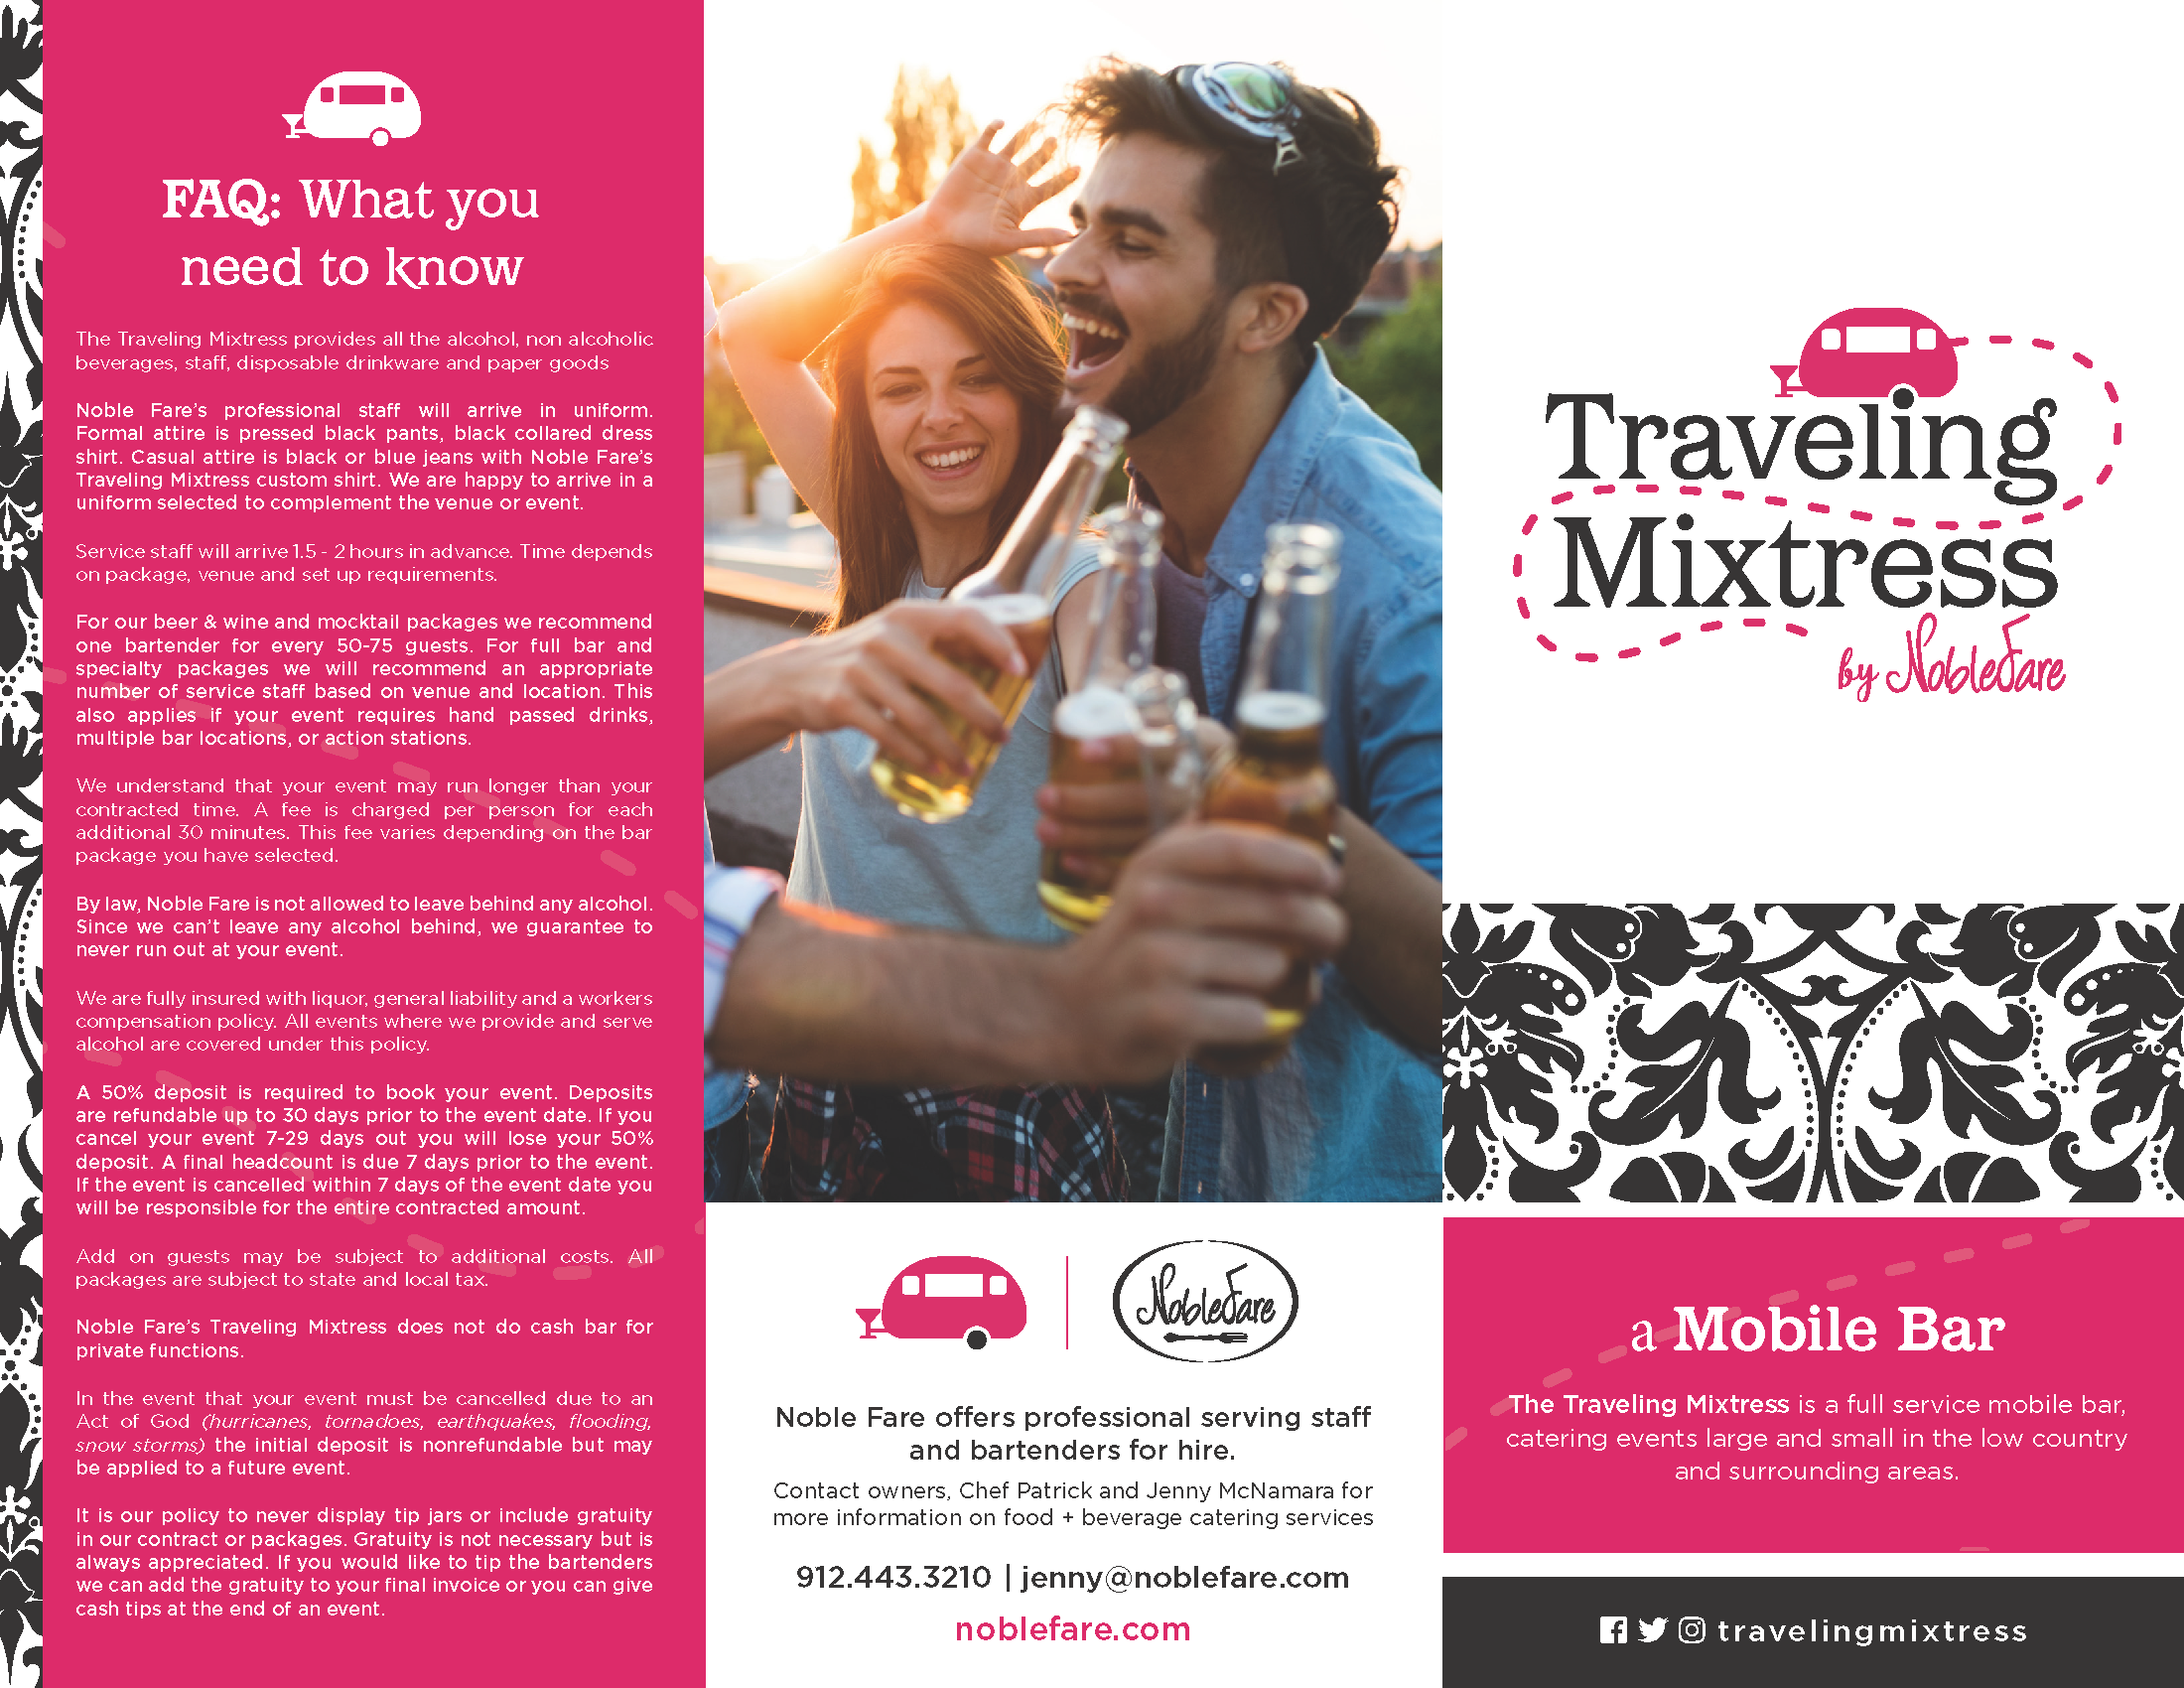 Noble Fare Catering - Traveling Mixtress Menu Brochure